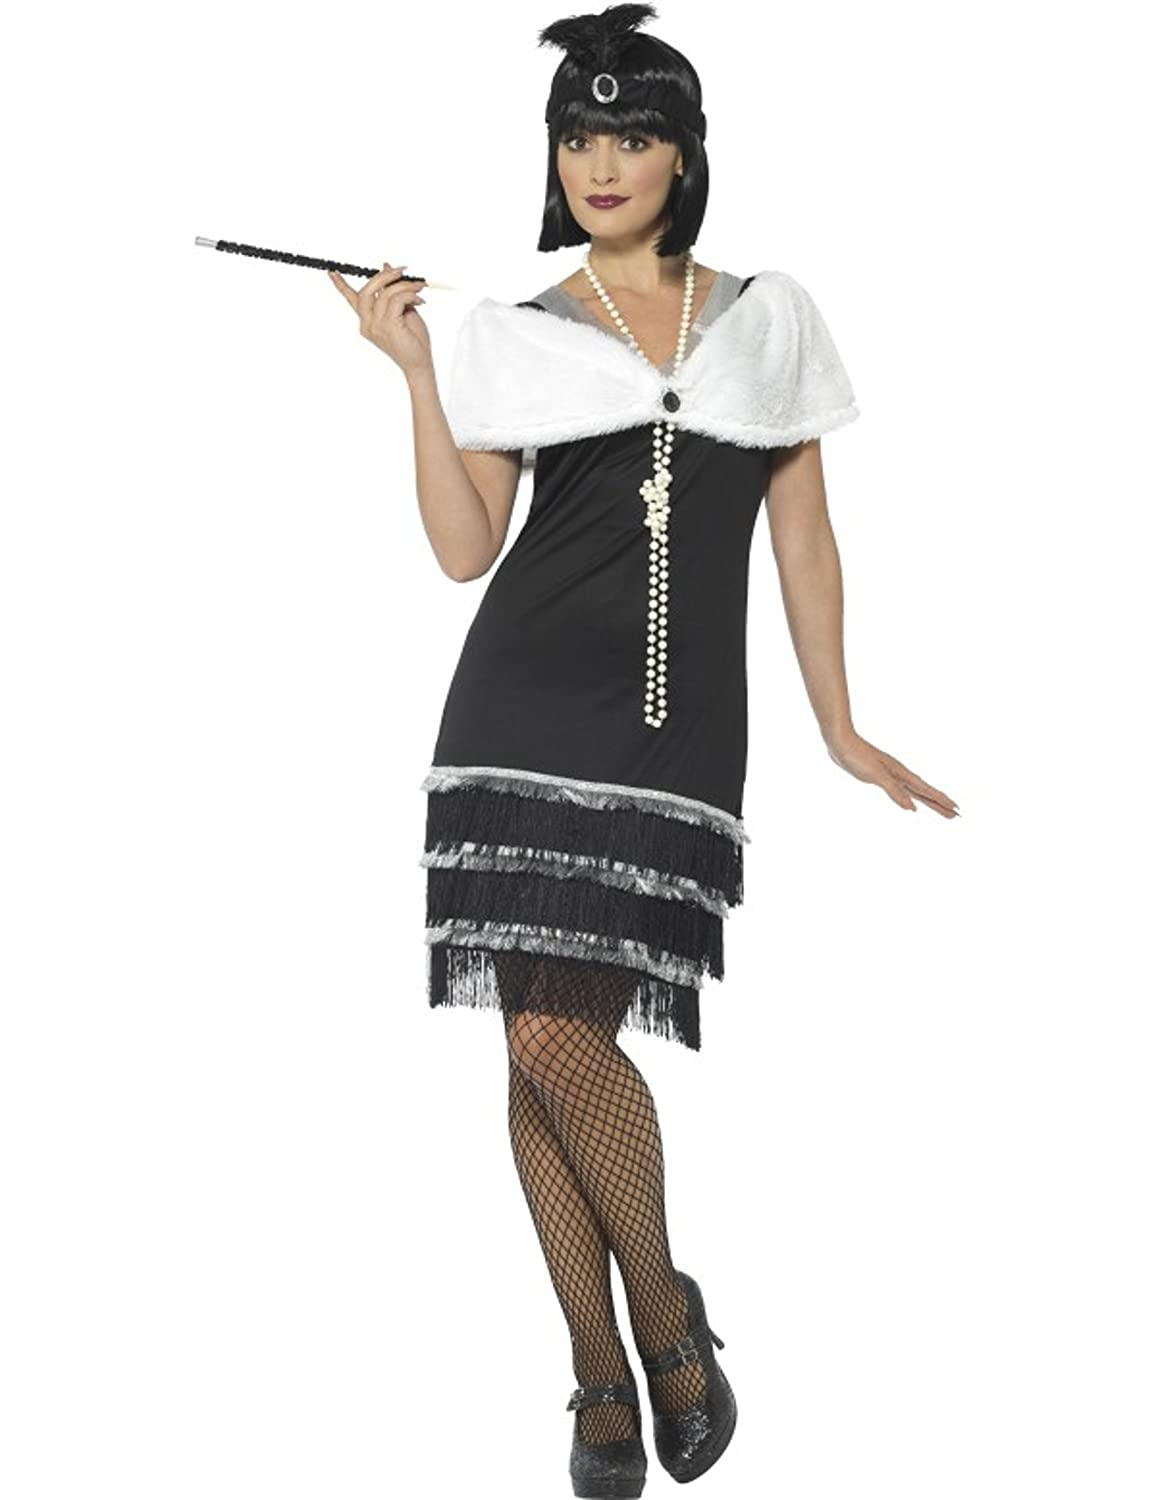 Roaring 20s Costumes- Flapper Costumes, Gangster Costumes Smiffys Womens Flapper Costume $23.59 AT vintagedancer.com